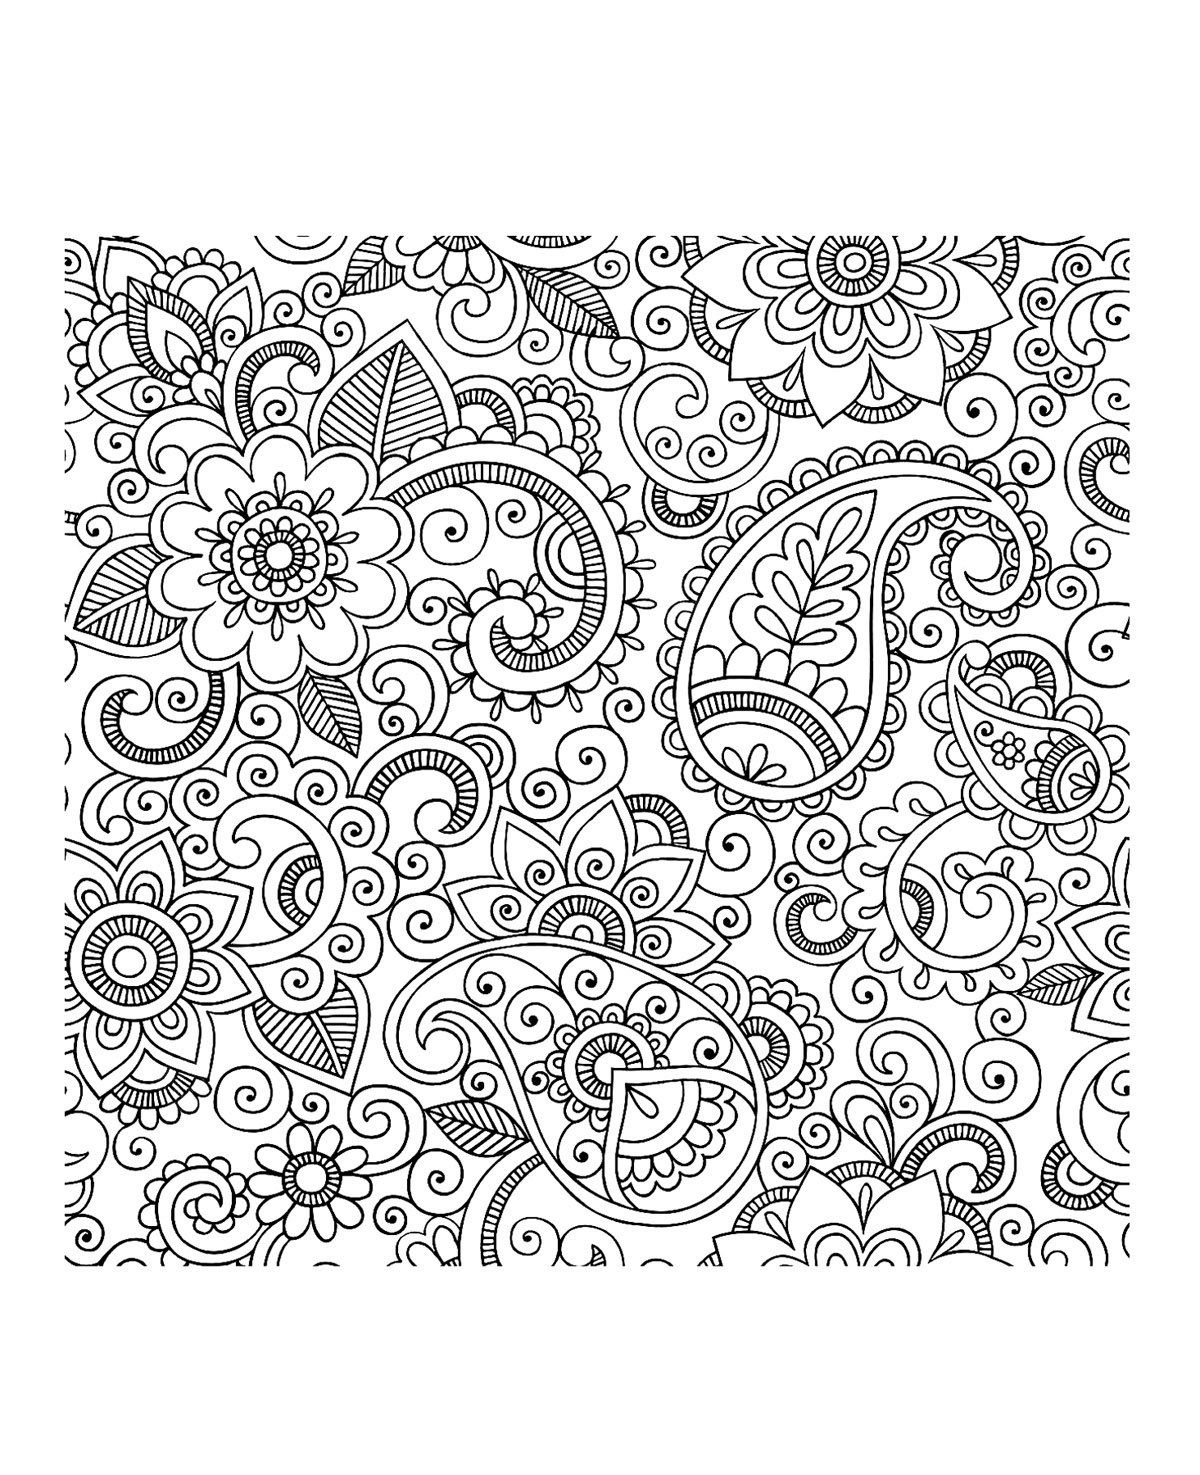 Flower garden coloring pages printable - Adult Coloring Pages Paisley 1